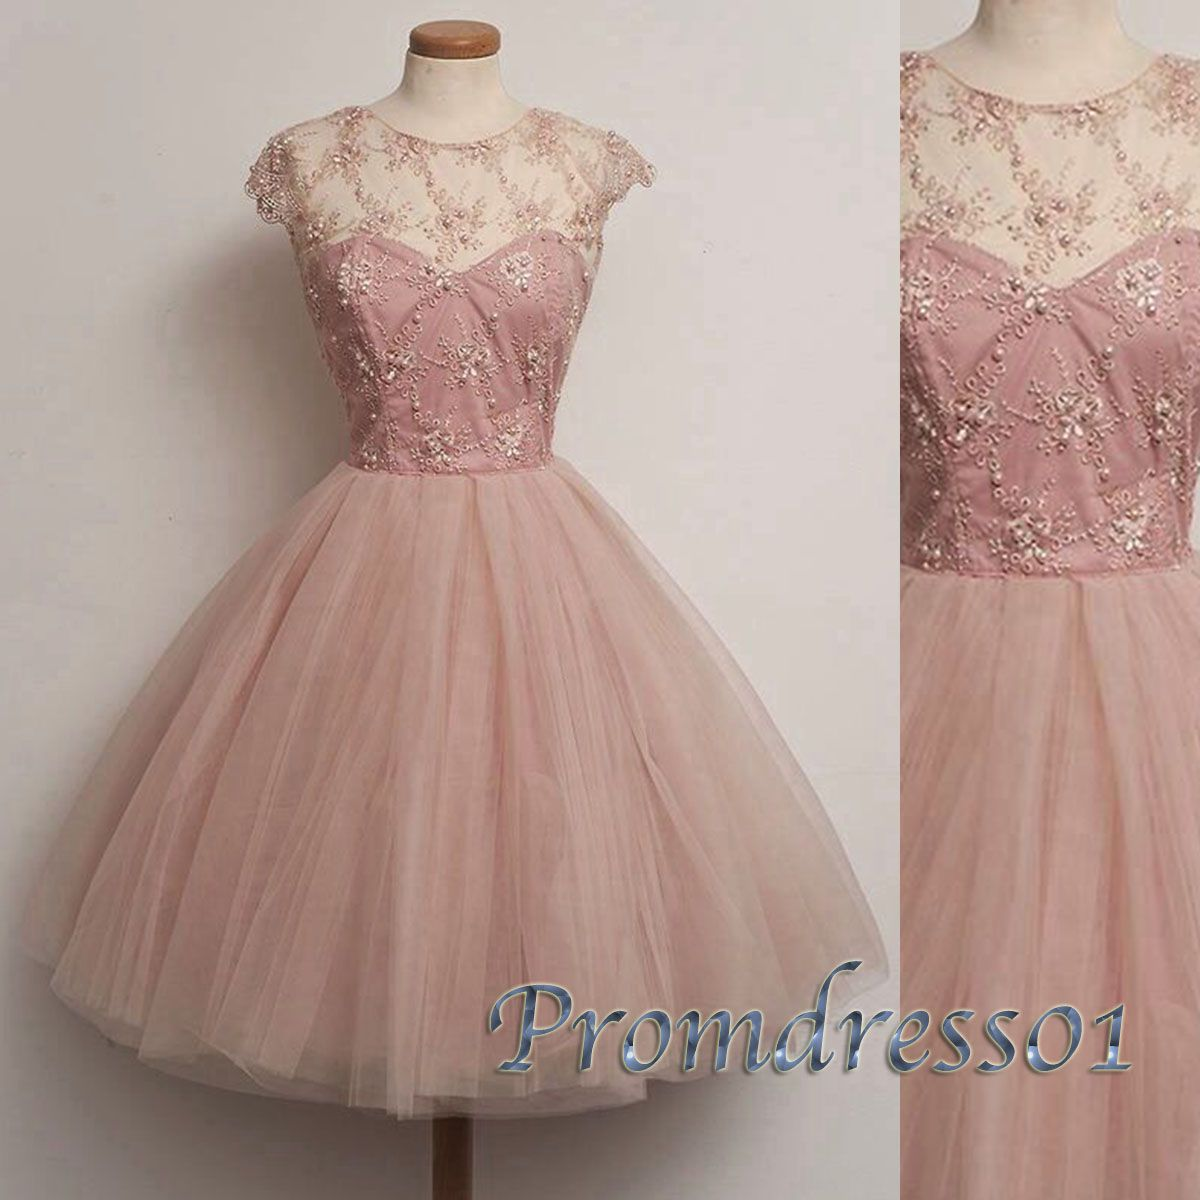 5736c2336ff7a Pretty light pink tulle short party dress, vintage prom dress for ...